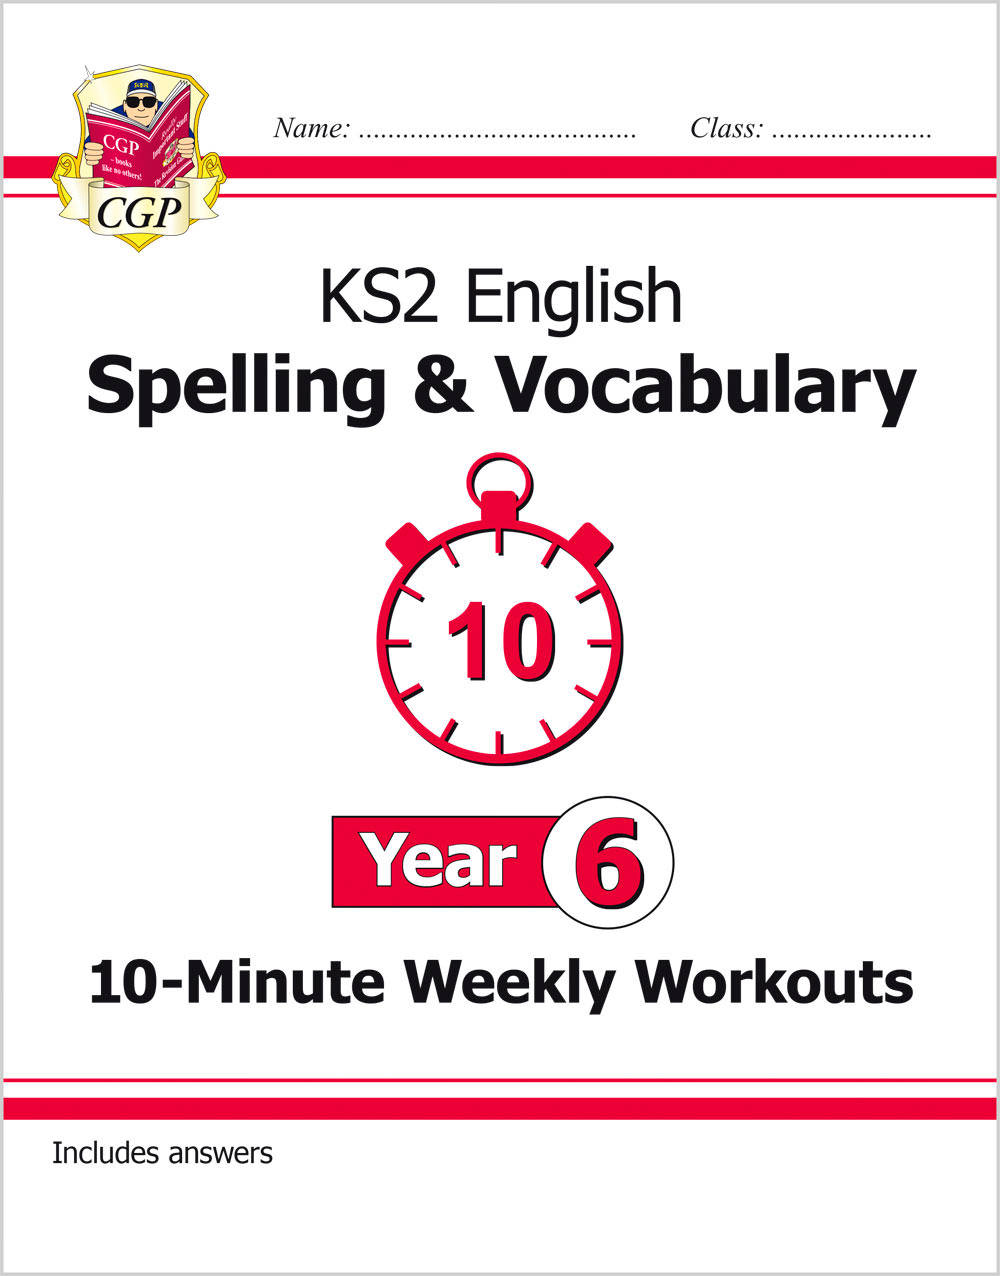 E6VSXW21 - New KS2 English 10-Minute Weekly Workouts: Spelling & Vocabulary - Year 6